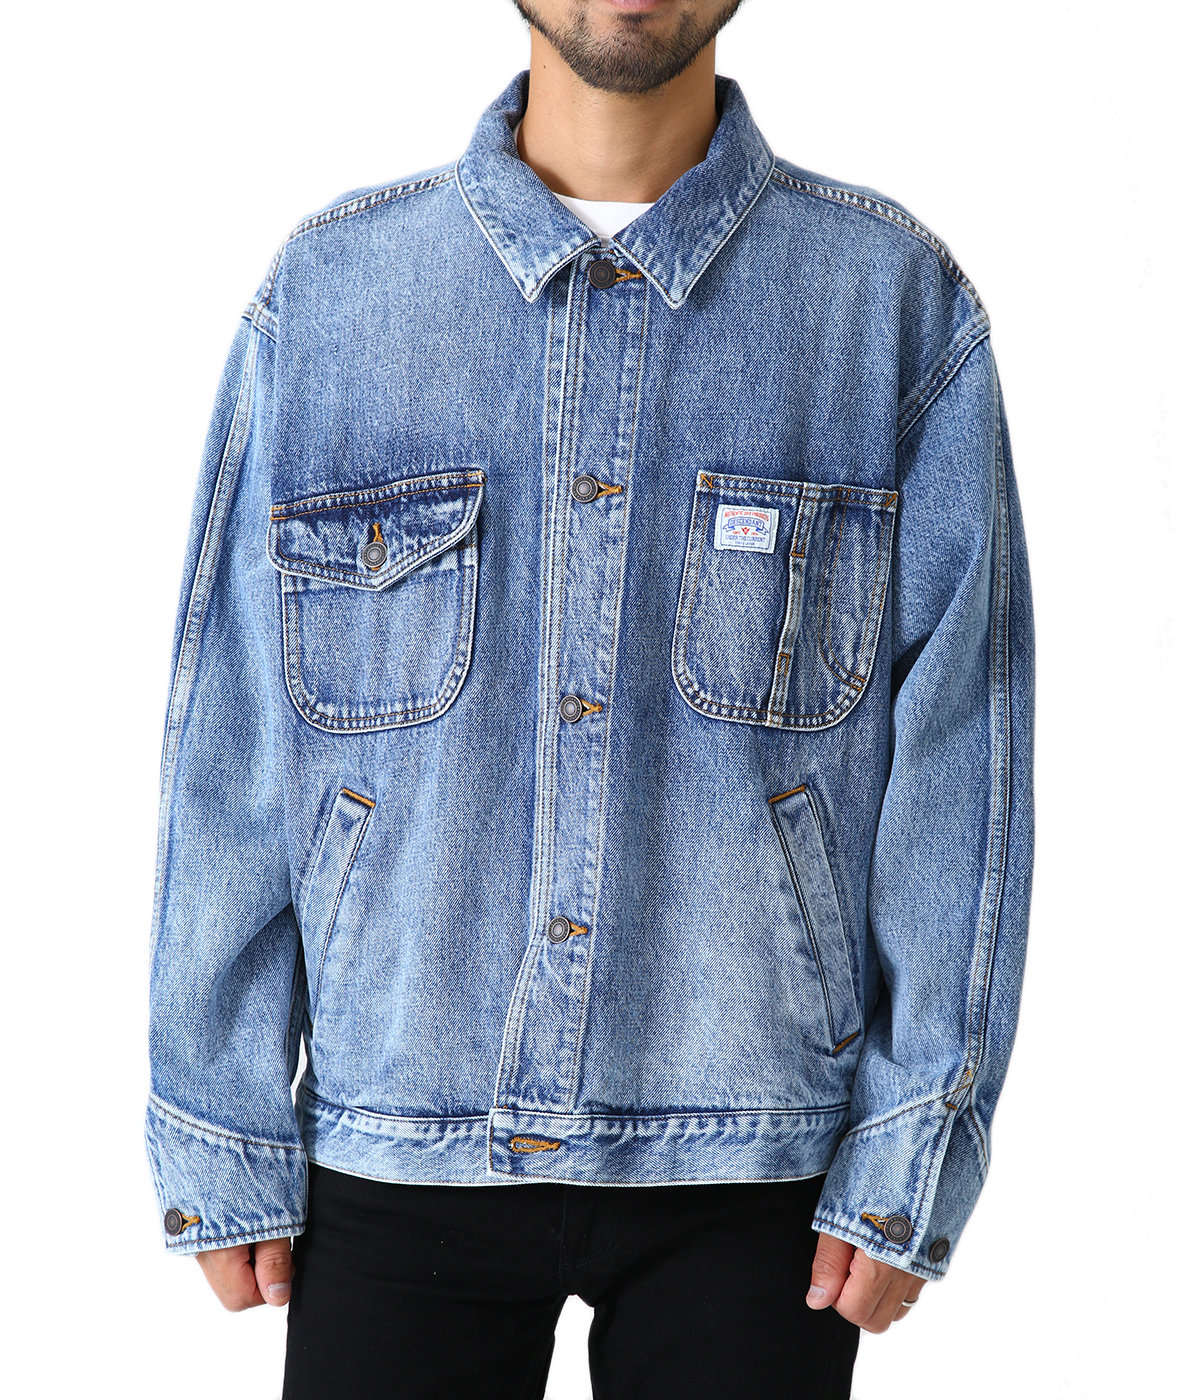 RANCH DENIM JACKET